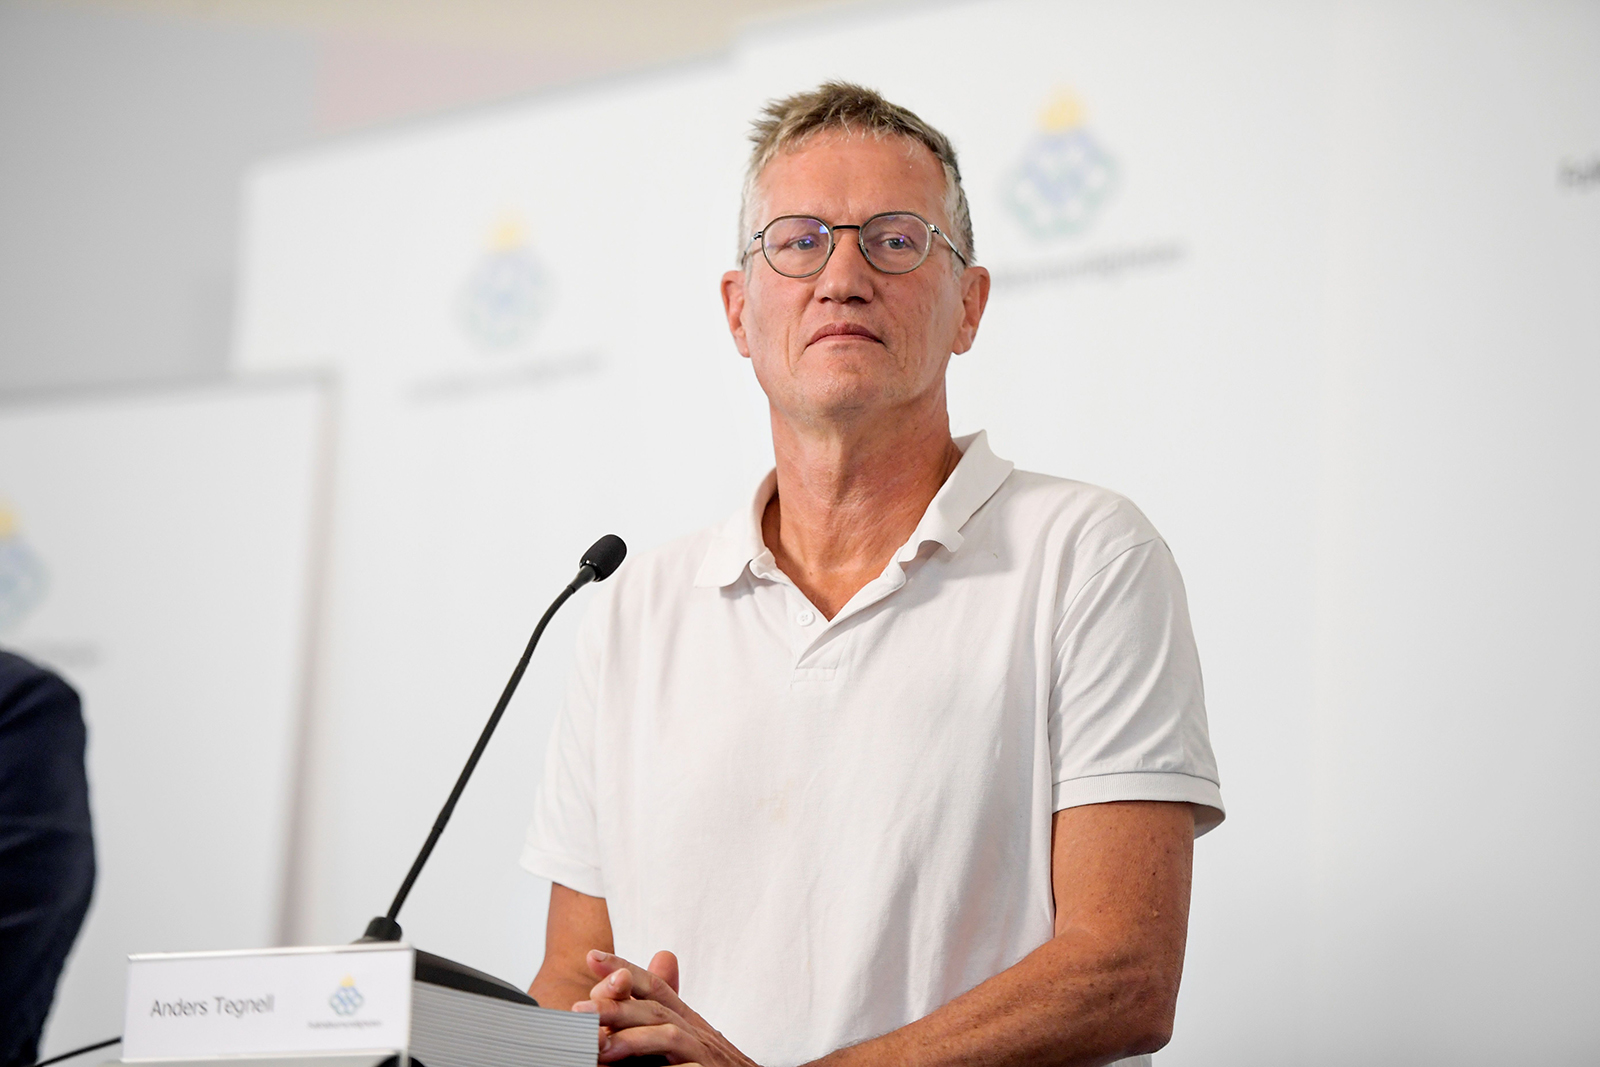 State epidemiologist Anders Tegnell of the Public Health Agency of Sweden speaks during a news conference updating on the coronavirus pandemic, in Stockholm, Sweden, on August 27.